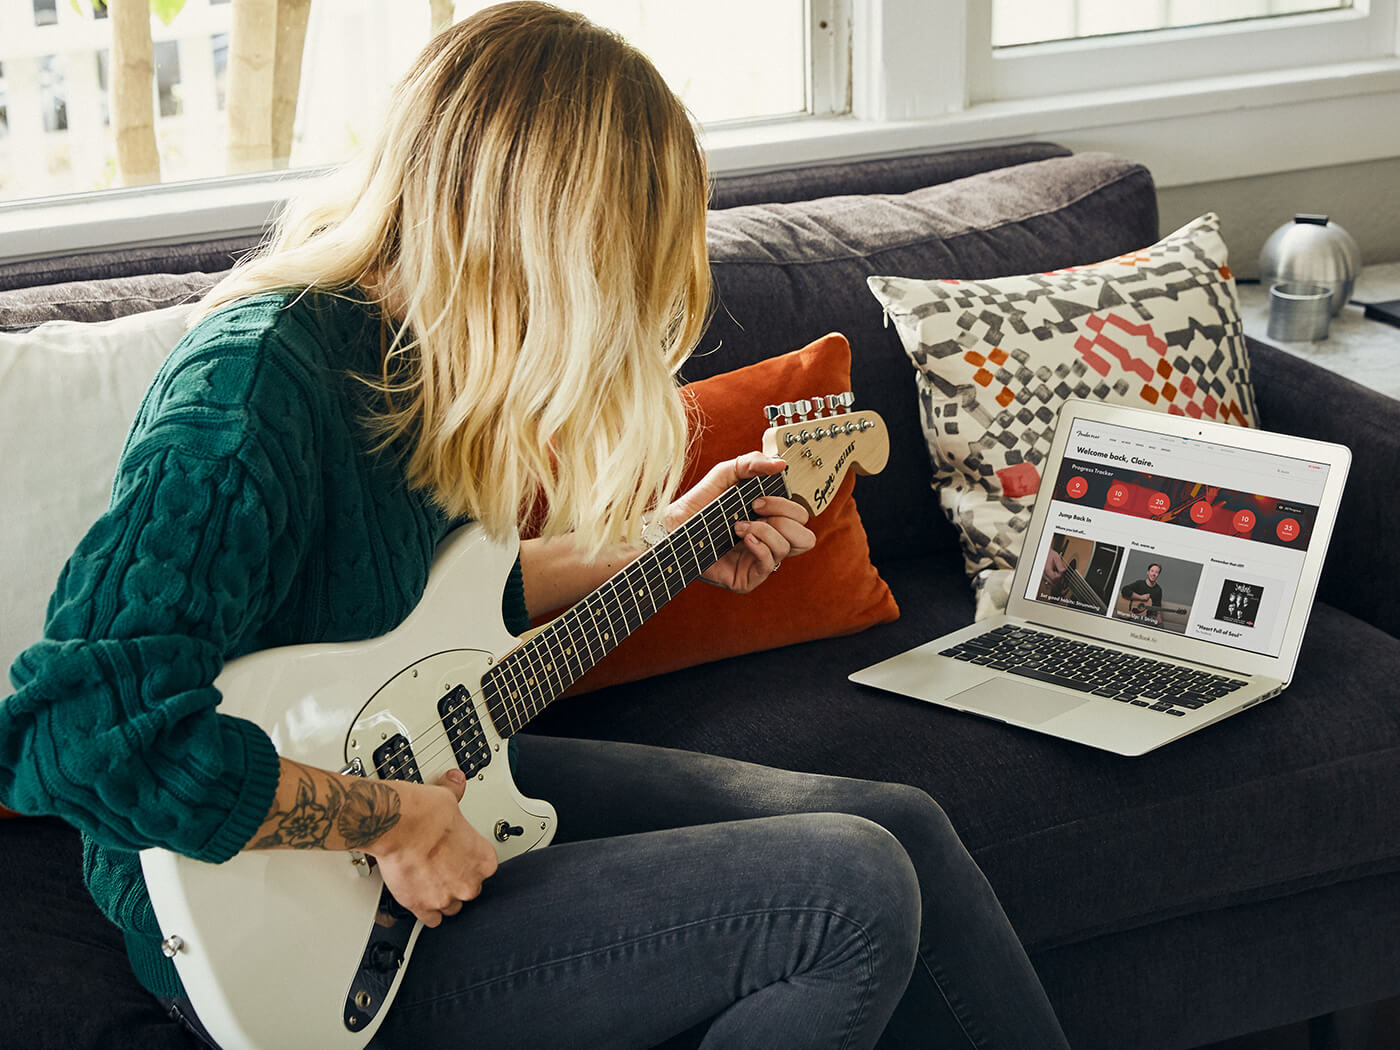 Fender Play Promotional Image